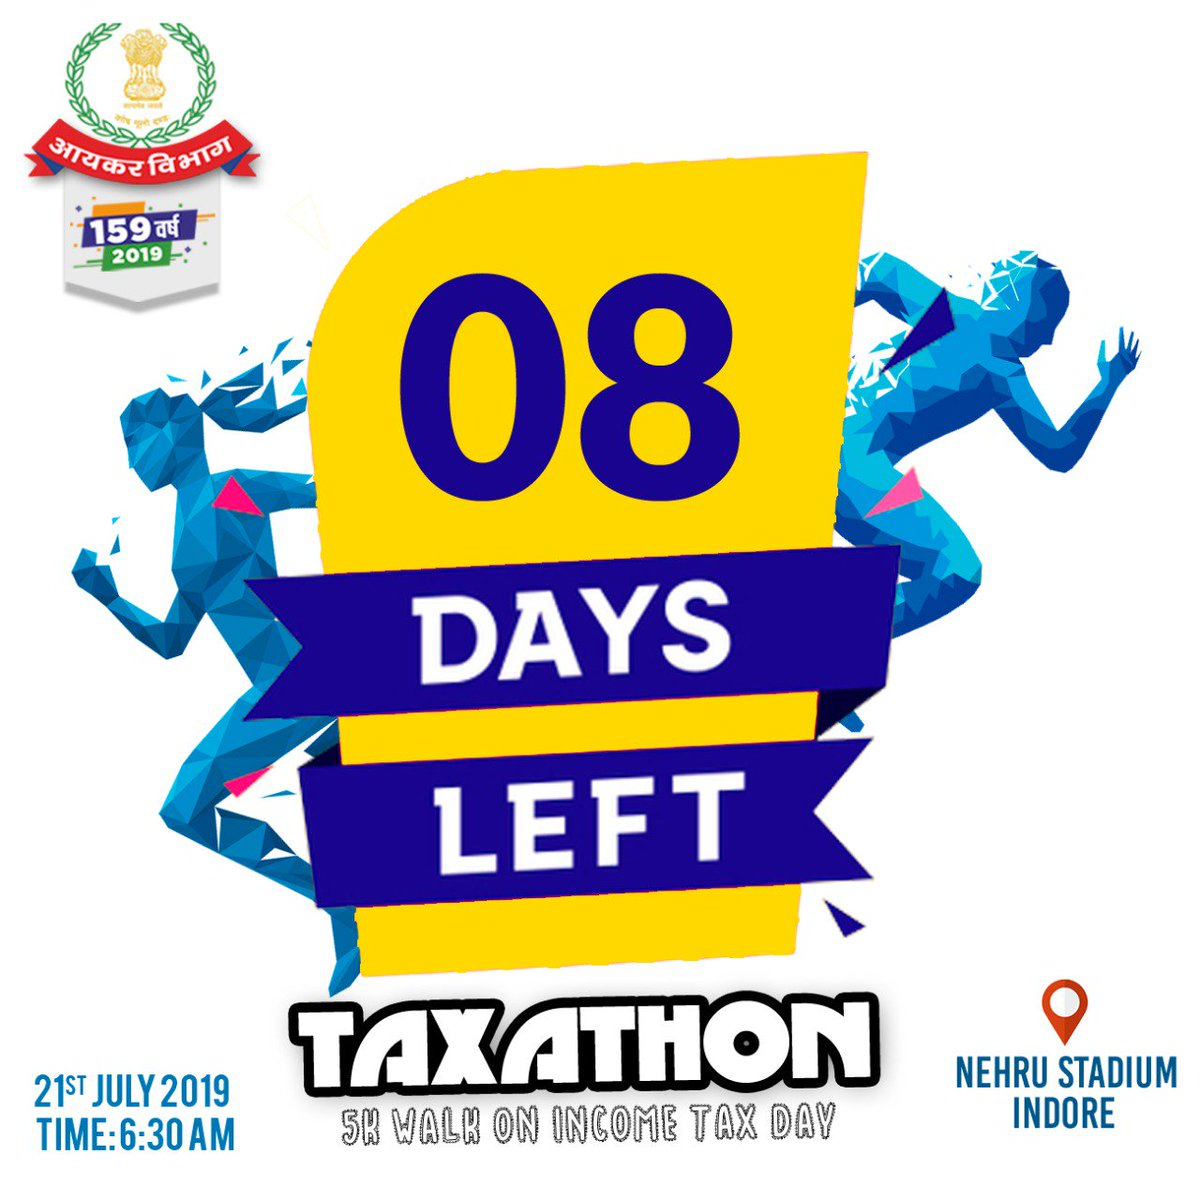 Just 8 days to go for #taxathon! The excitement is high. Let's walk together to commemorate the national tax day and foster health and wellness for the development of the nation. See you there! <br>http://pic.twitter.com/KtS7rI2Zi1